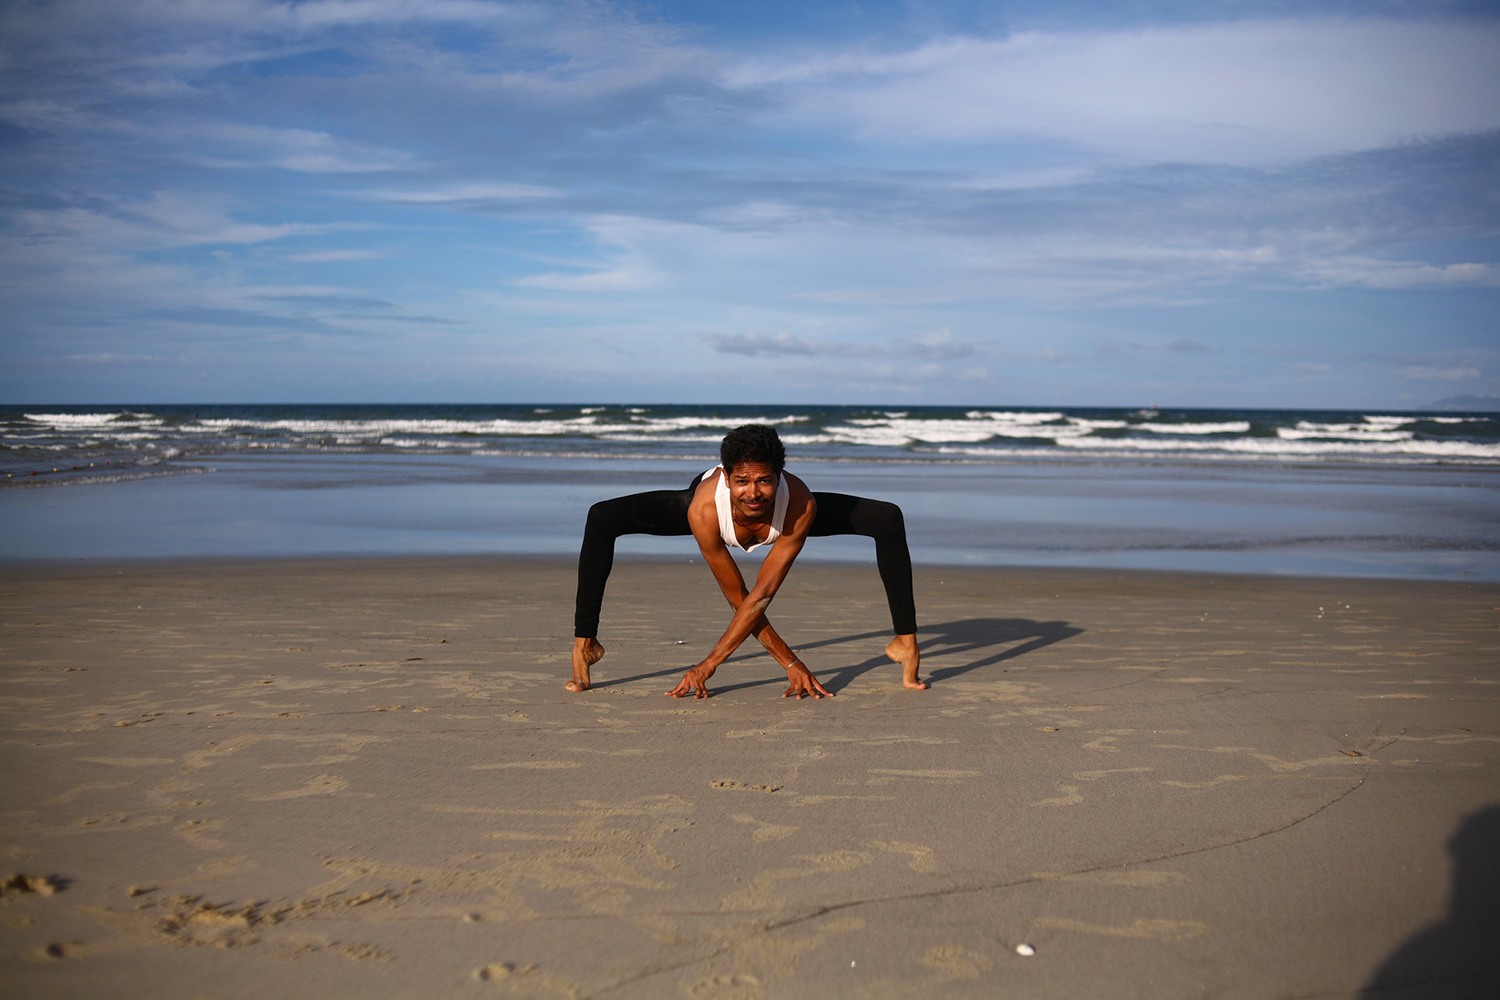 Flexible Man Practicing Yoga Bending in Variation of Goddess or Sumo Squat Pose